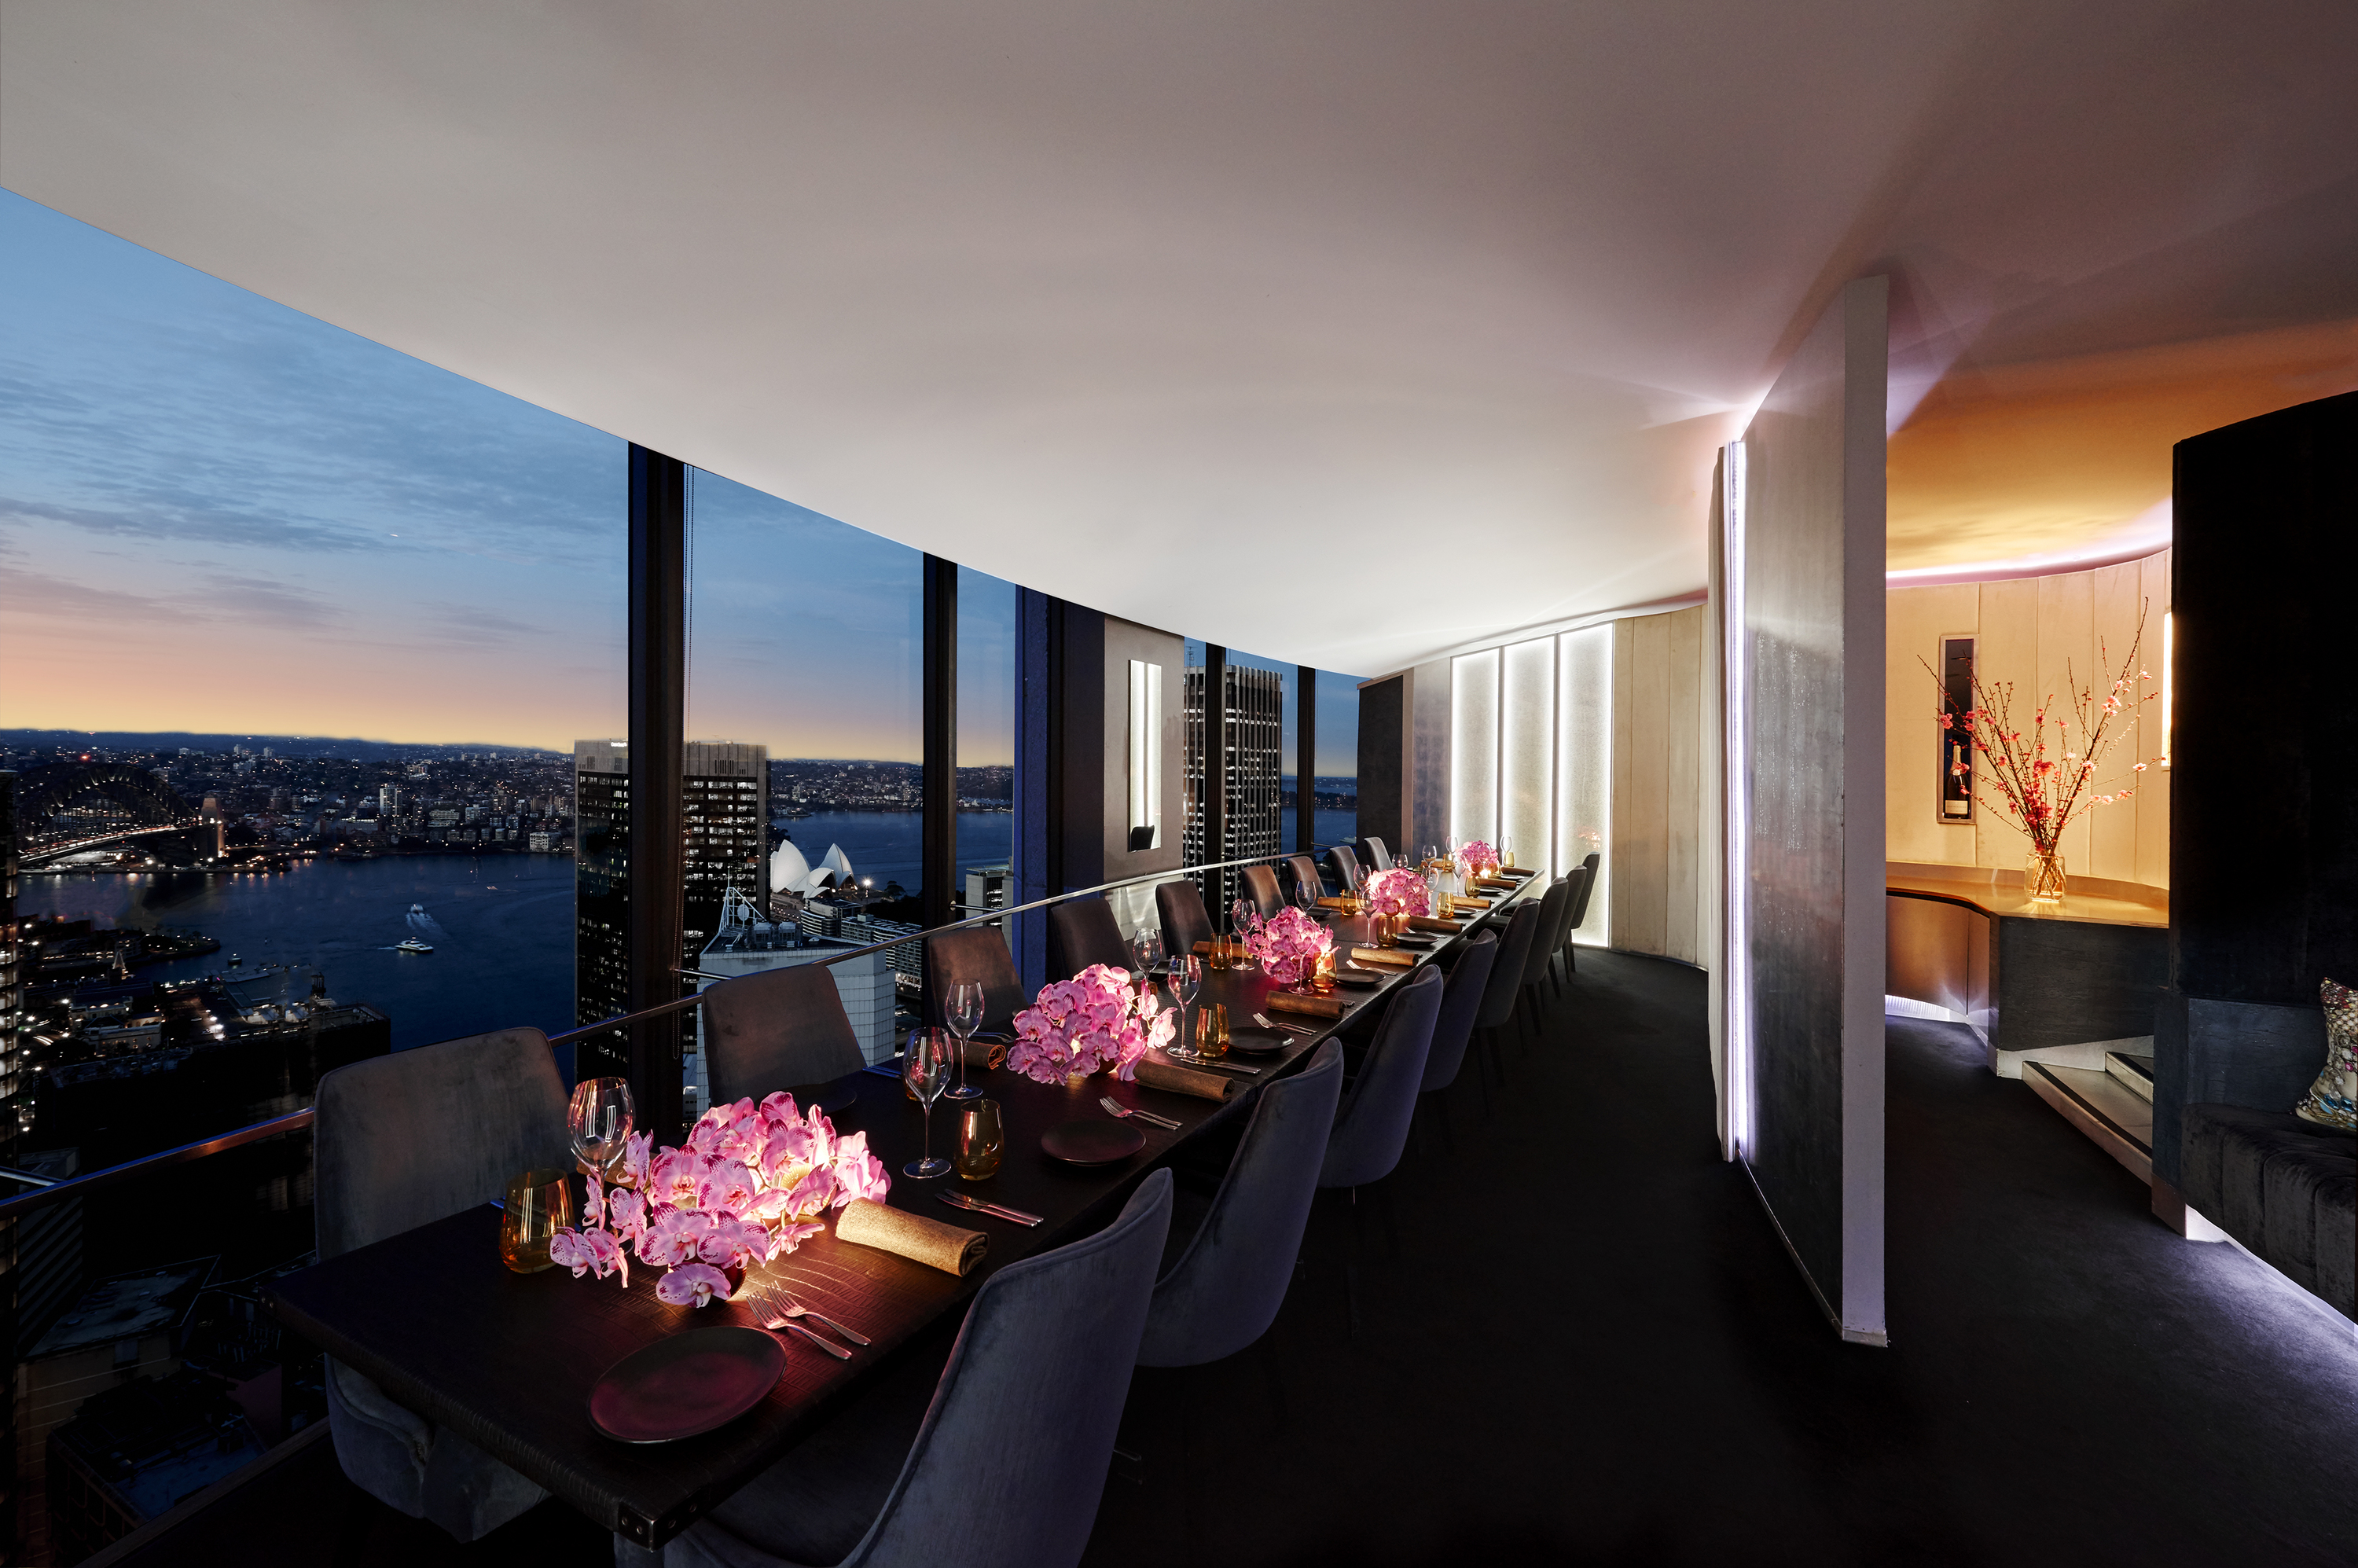 The private dining room at dusk at O Bar and Dining